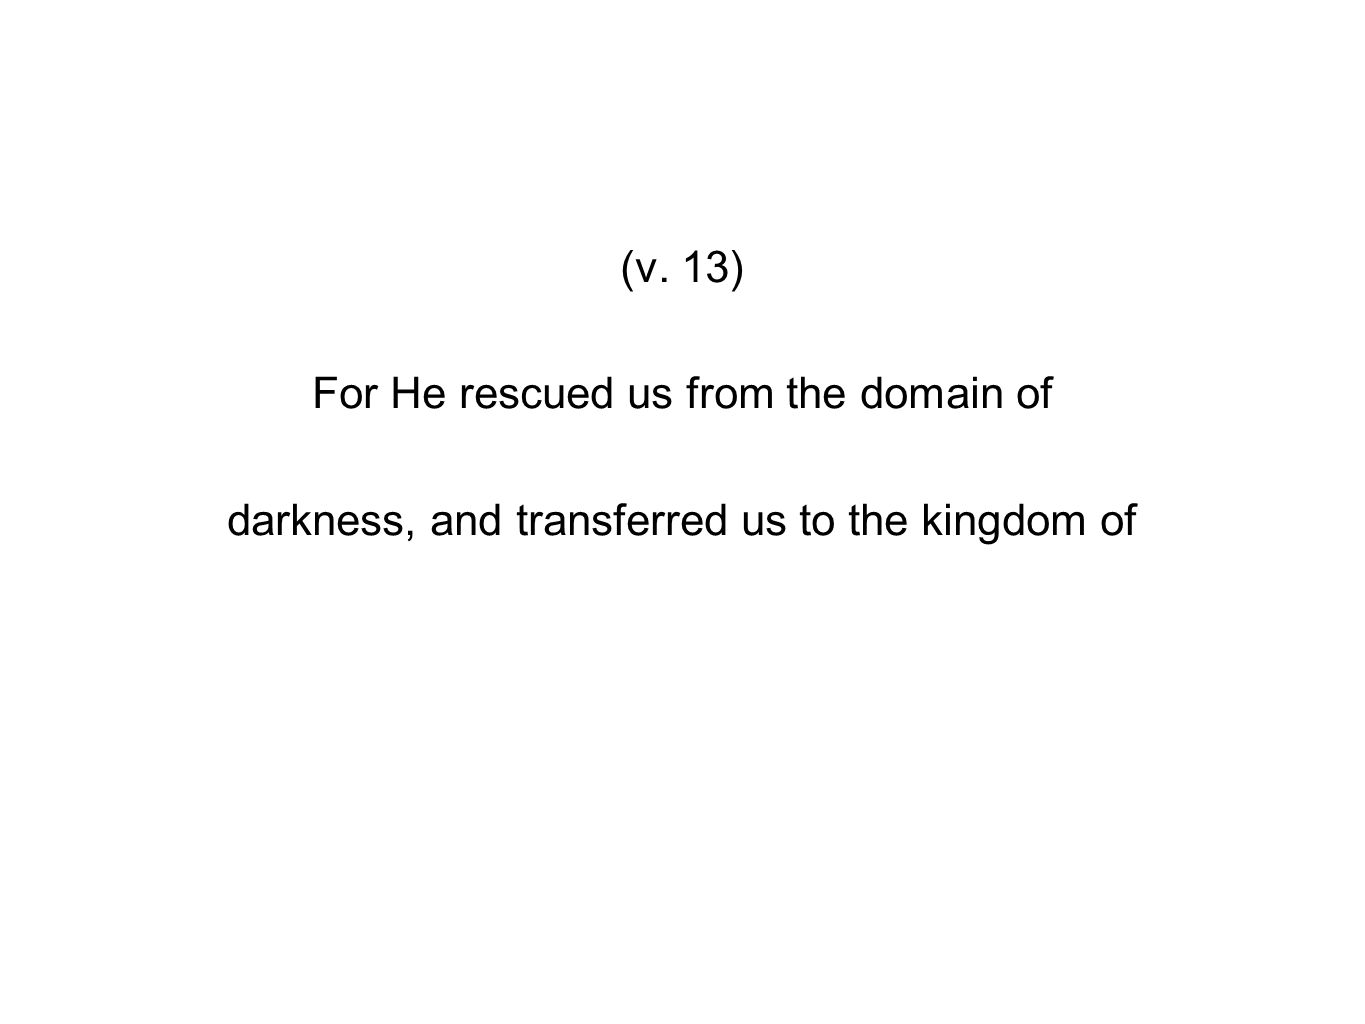 (v. 13) For He rescued us from the domain of darkness, and transferred us to the kingdom of